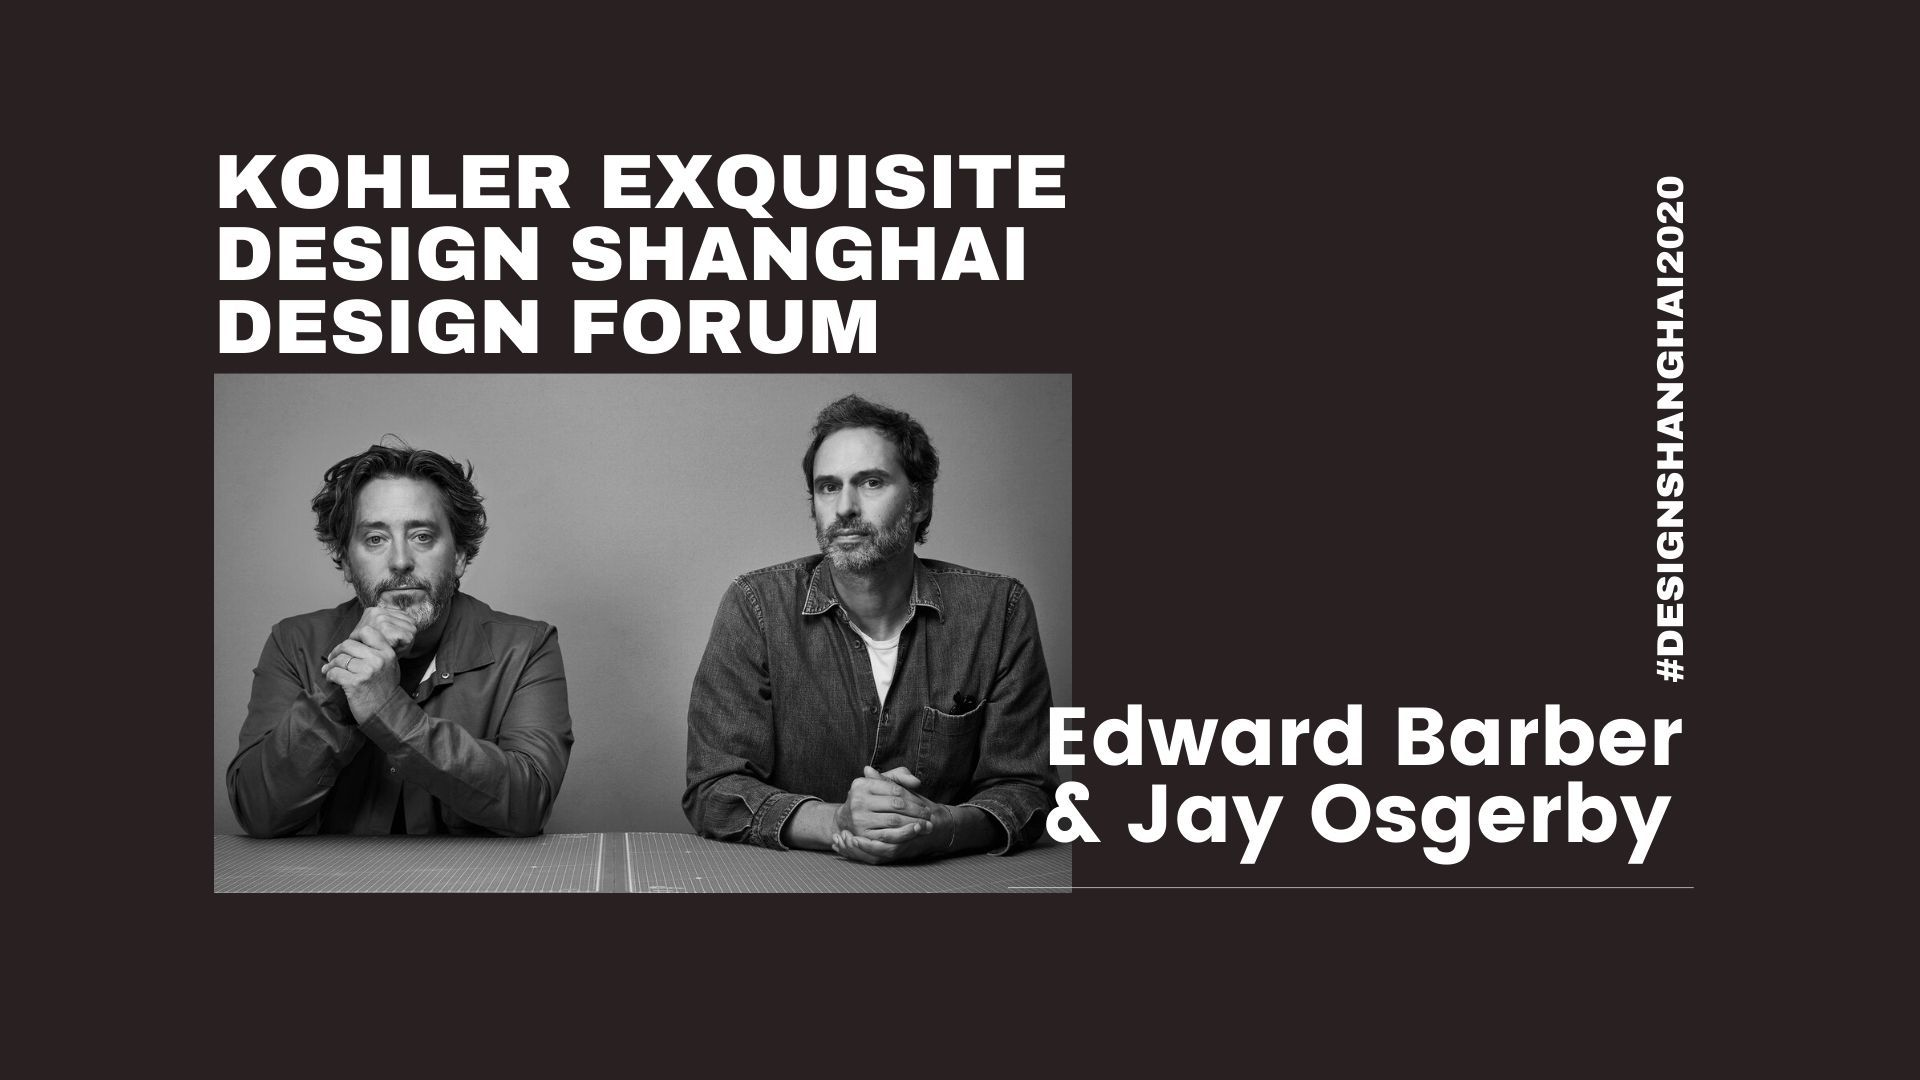 论坛视频回顾丨Edward Barber & Jay Osgerby:Global, Local, Future of Work